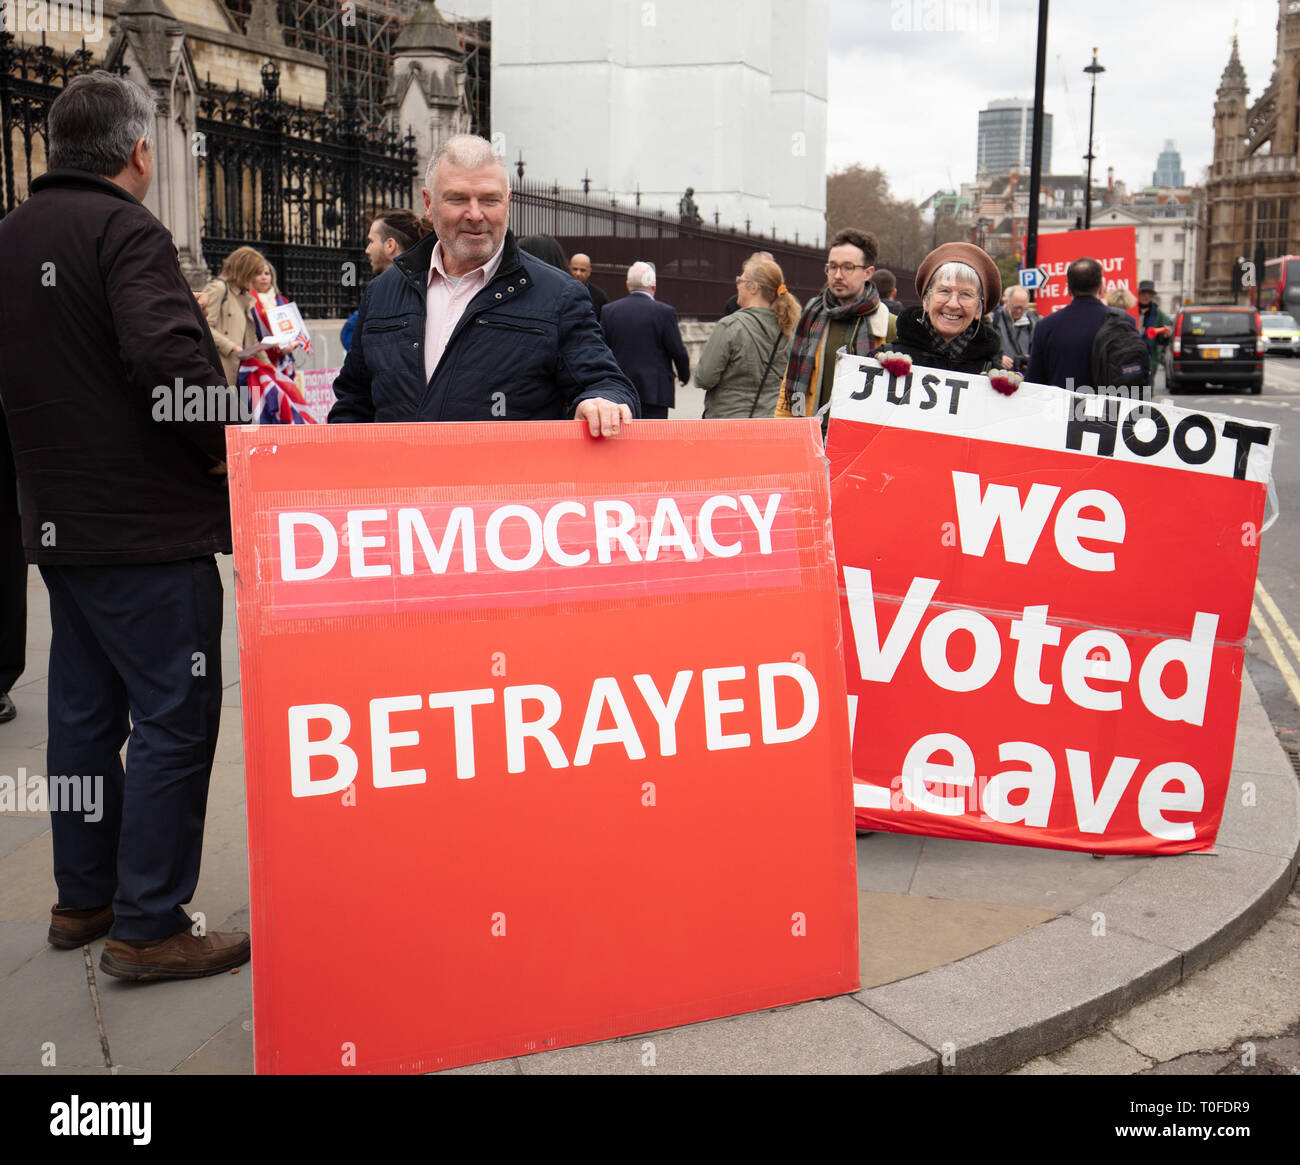 London, UK. 19th March, 2019. Brexiteers protest with large boards in front of Parliament, Parliament Square, London, UK, today. Credit: Joe/Alamy Live News - Stock Image